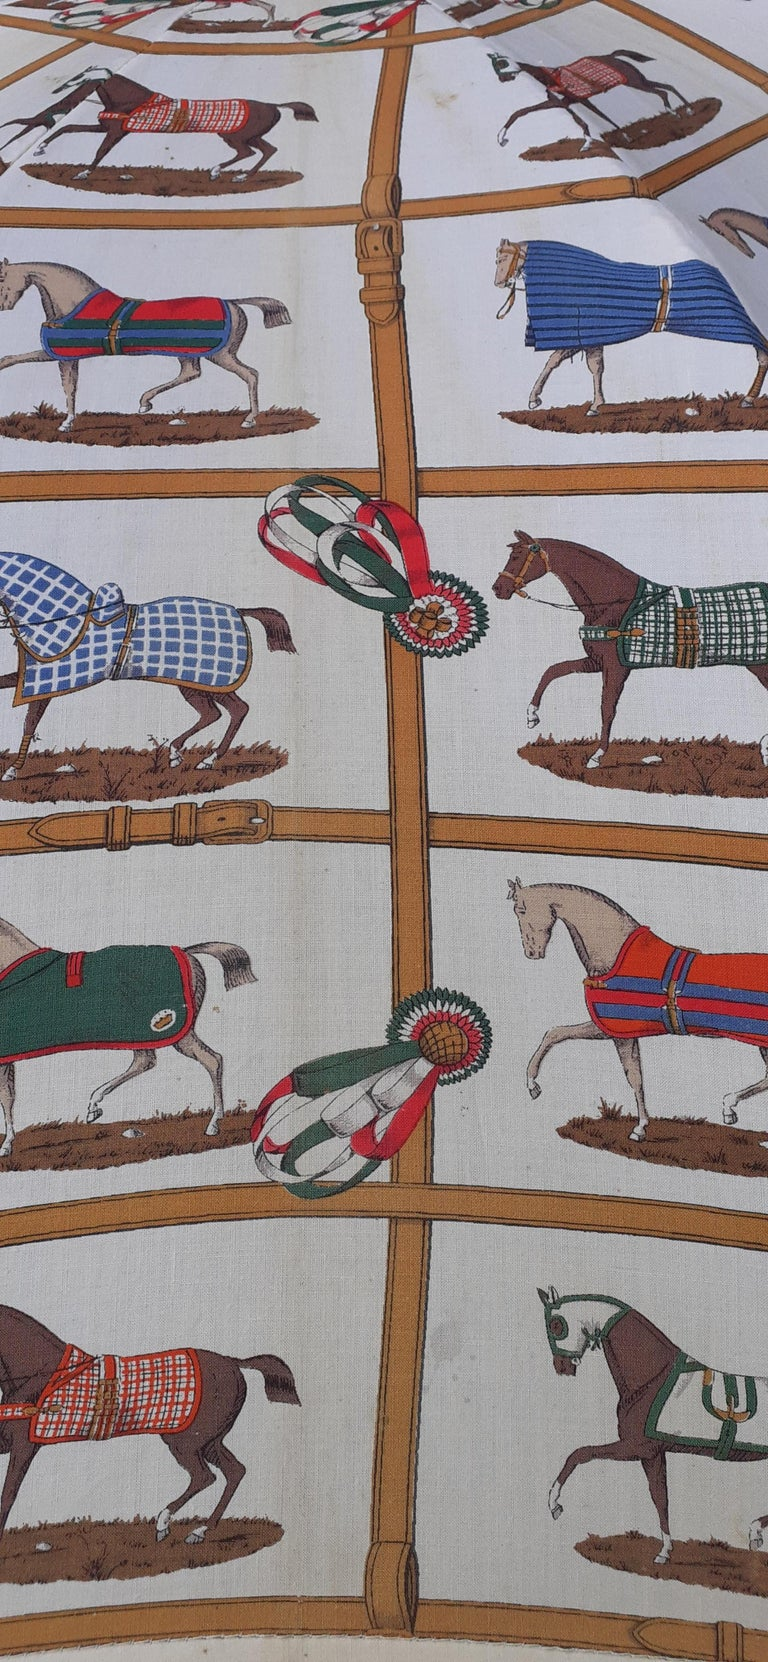 Exceptional Hermès Vintage Umbrella Sunshade Horses Hippodrome Rare For Sale 12